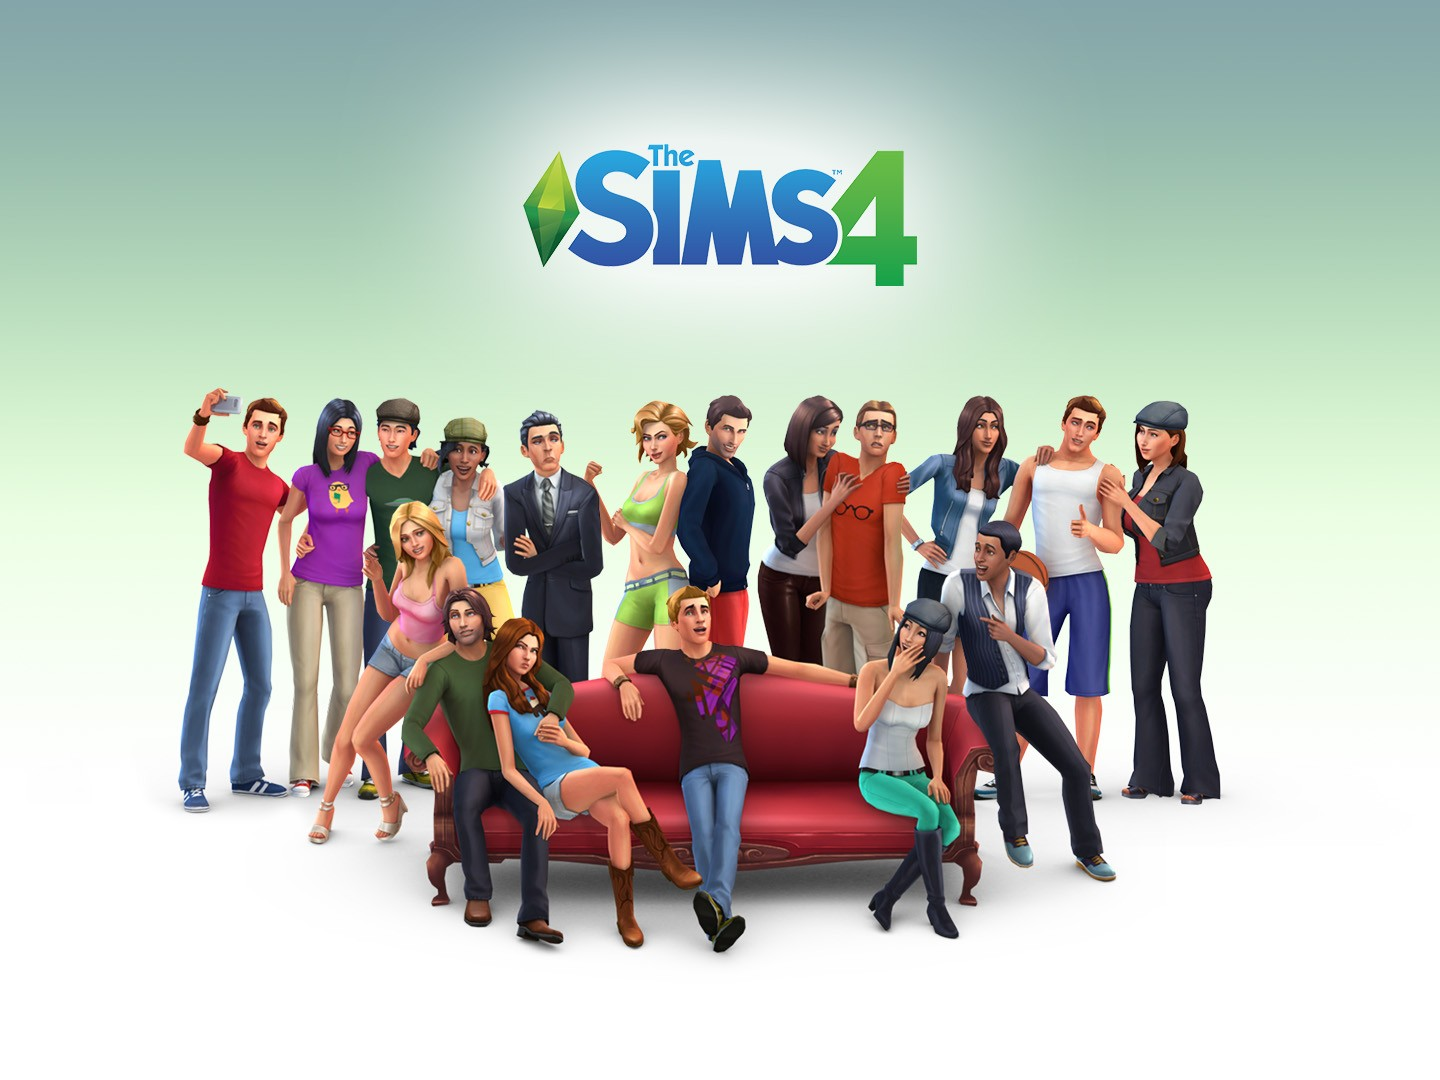 The-Sims-4-Game-Wallpaper